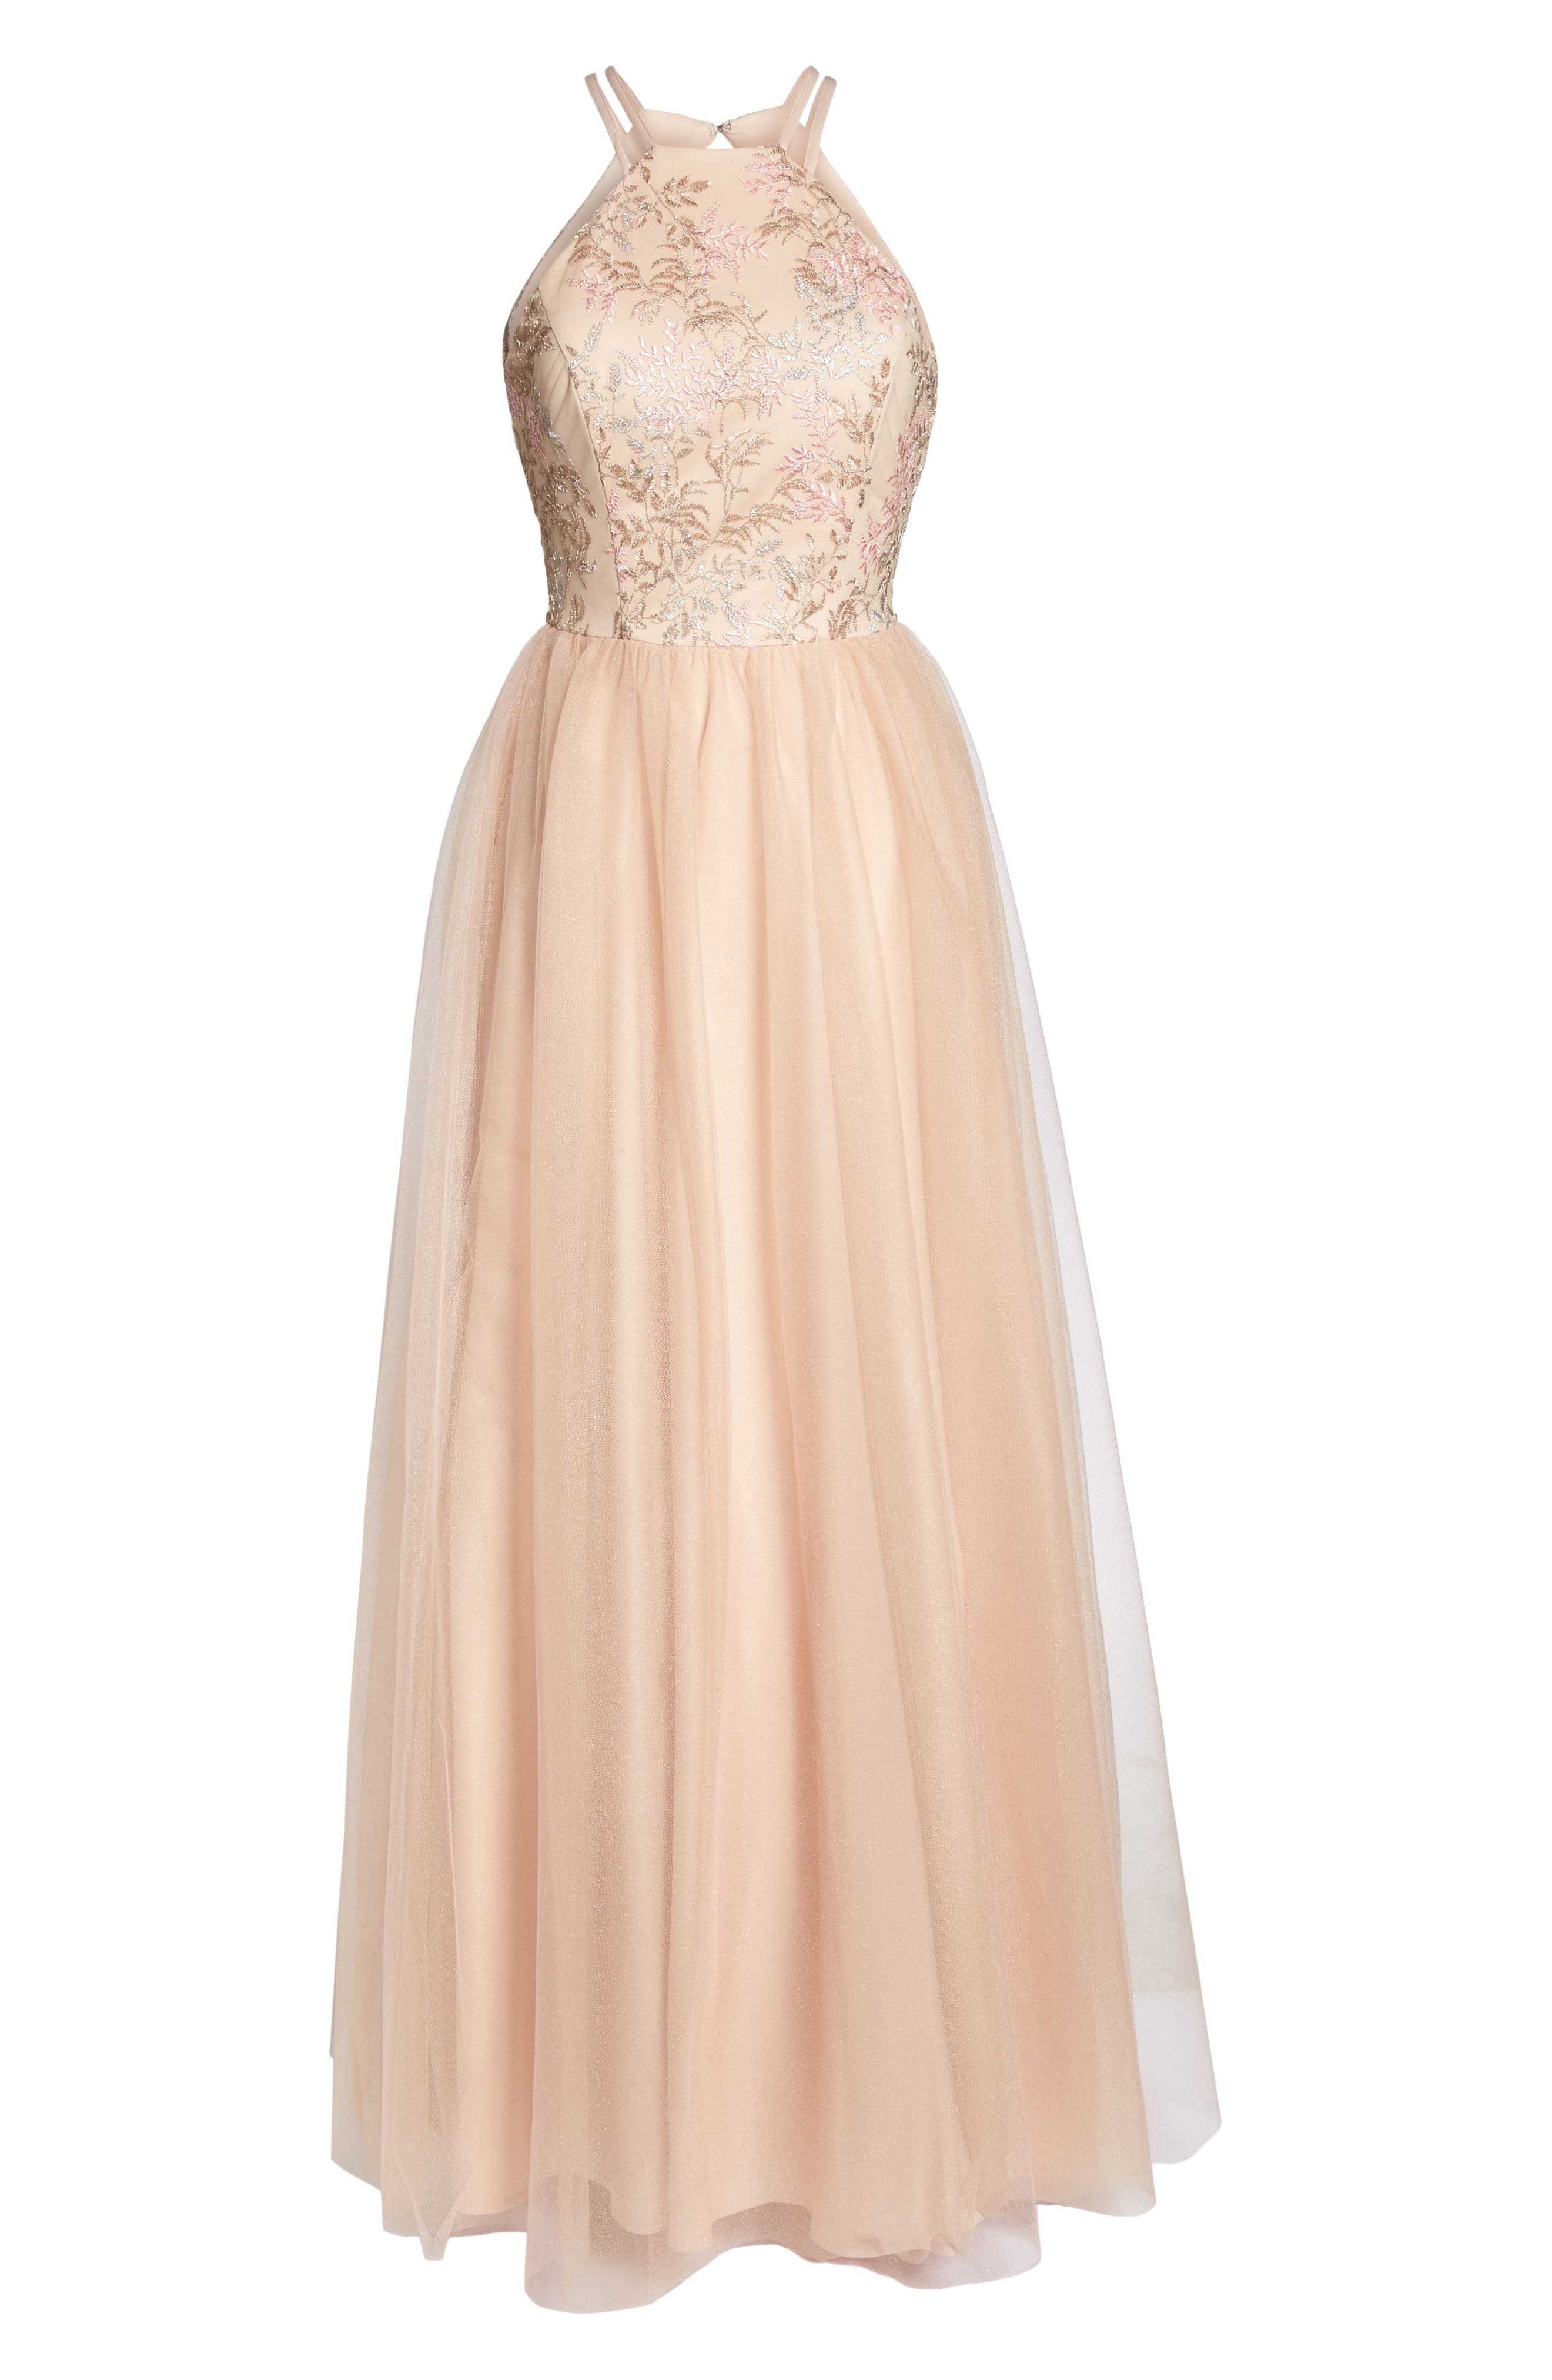 Embroidered Bodice Fit & Flare Gown,                             Alternate thumbnail 6, color,                             Blush / Nude / Pink